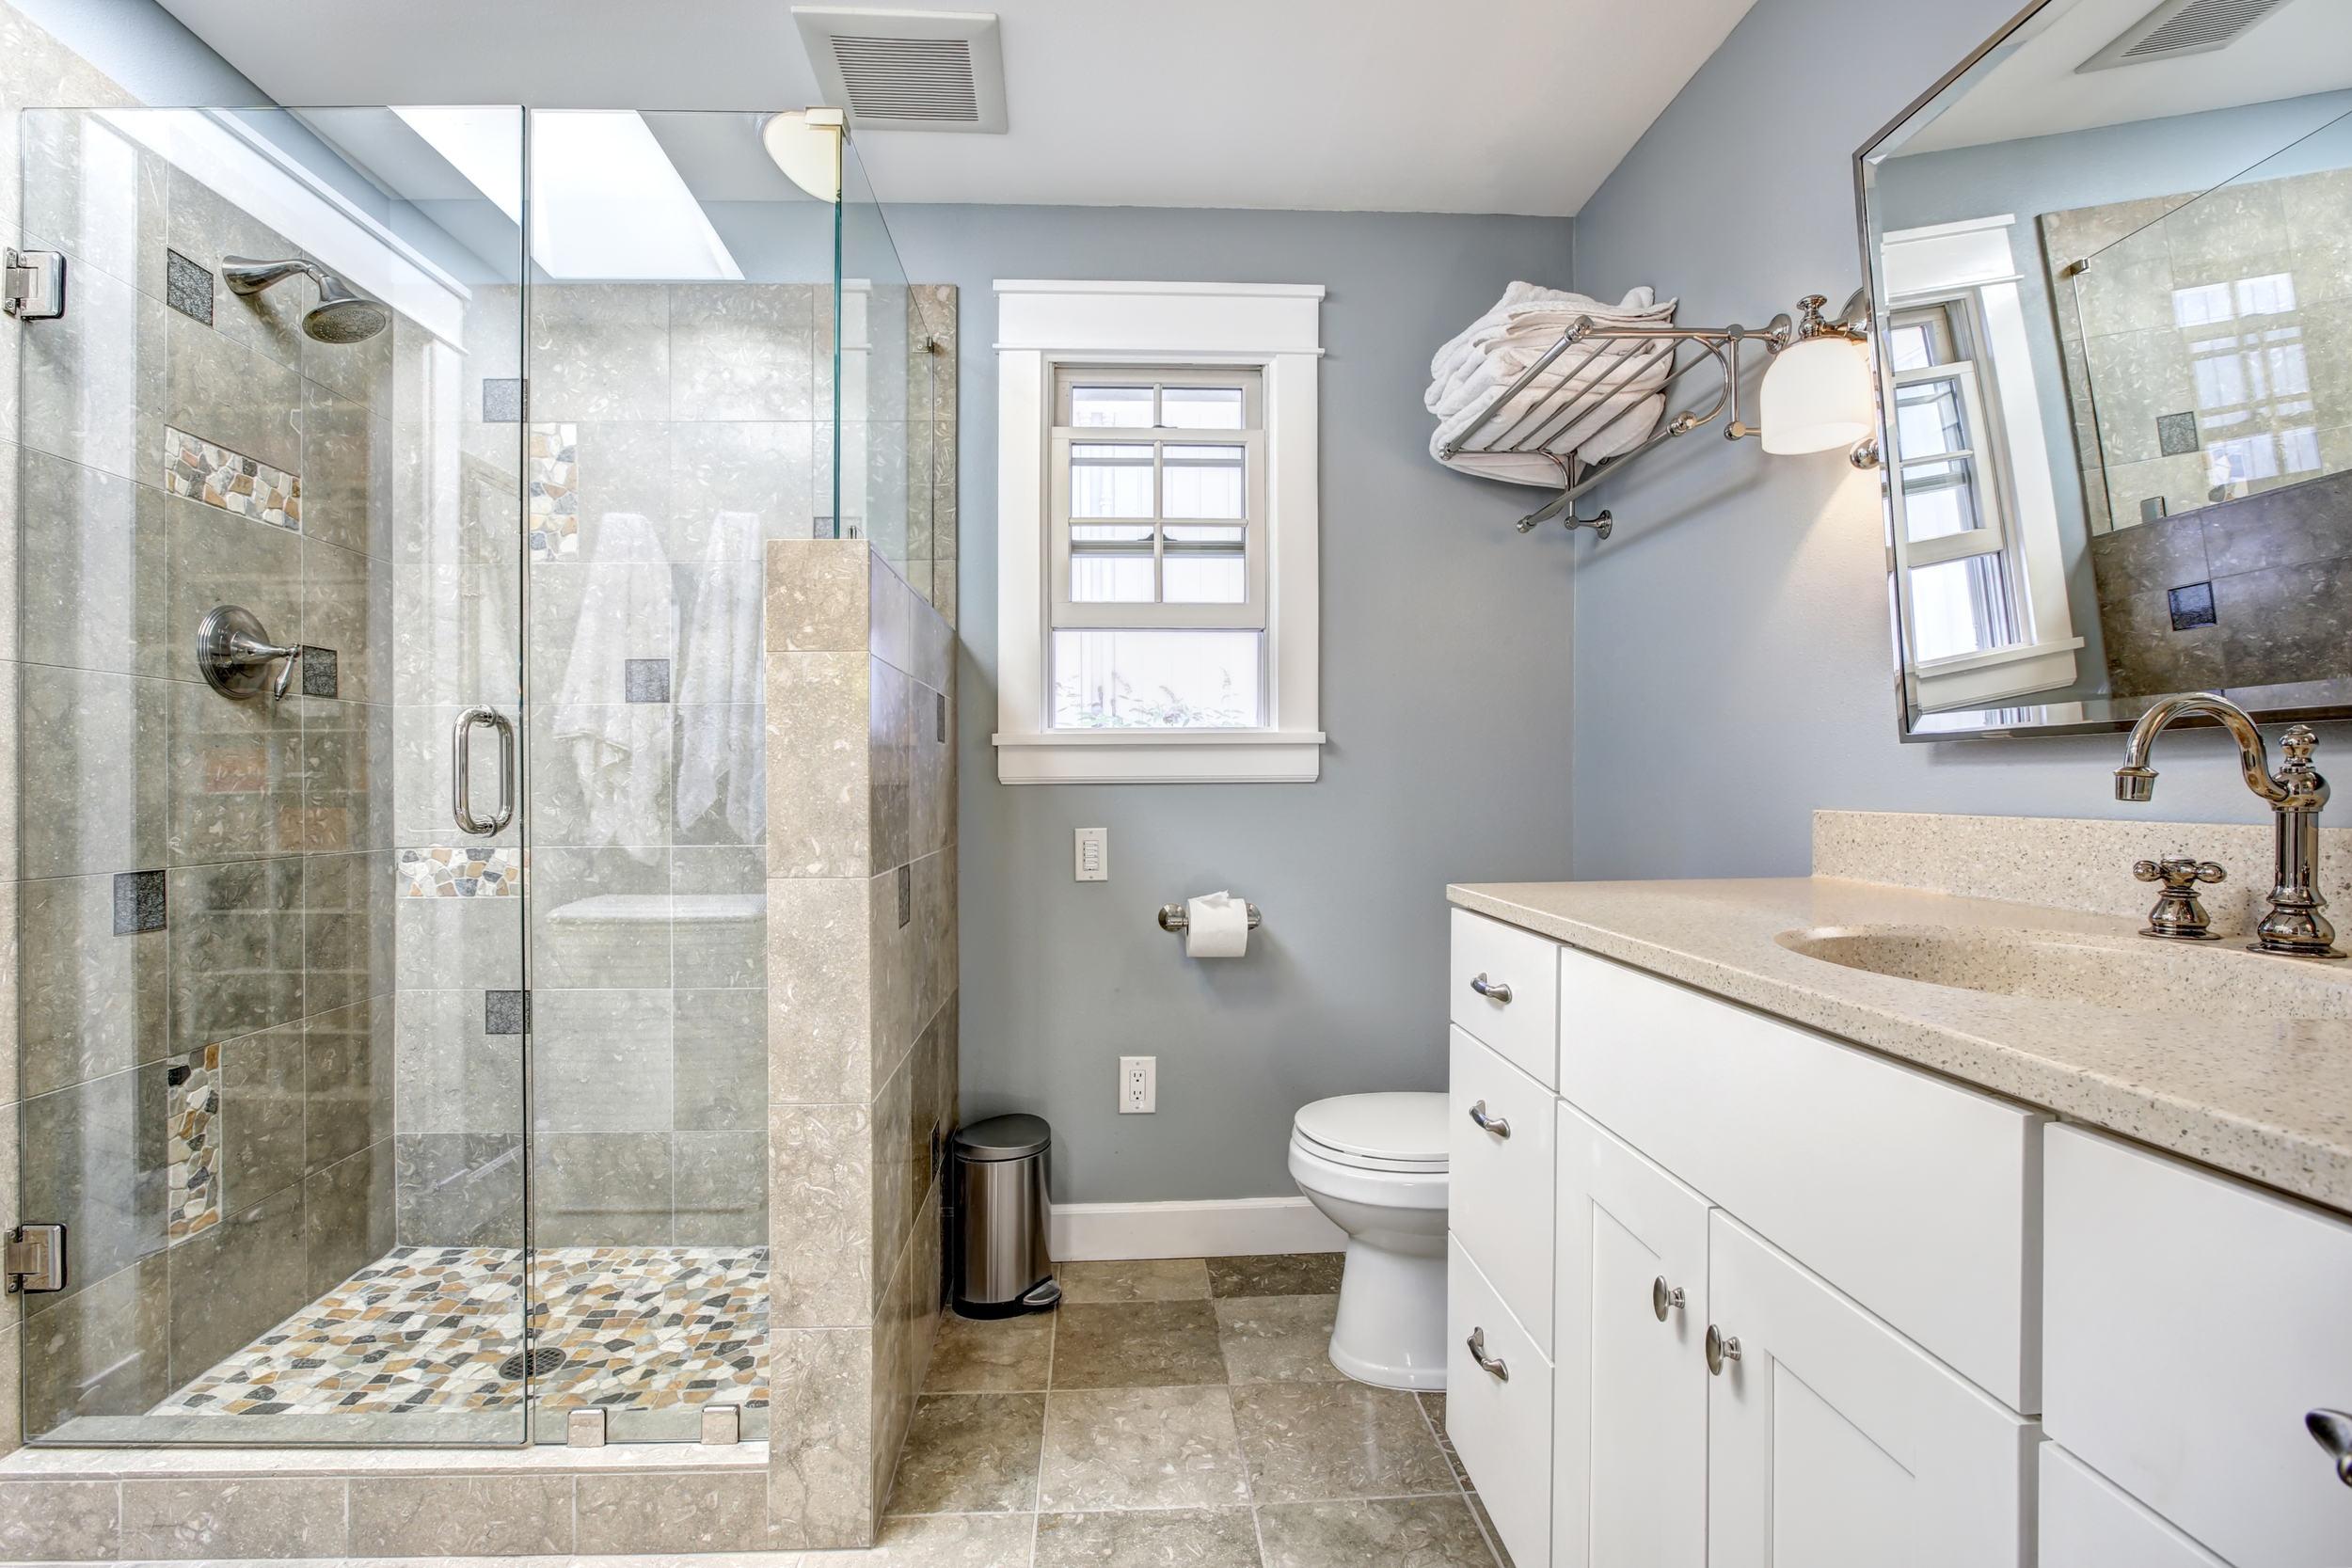 Small bathroom with blue-grey paint, tan tile, white trim, and walk-in shower